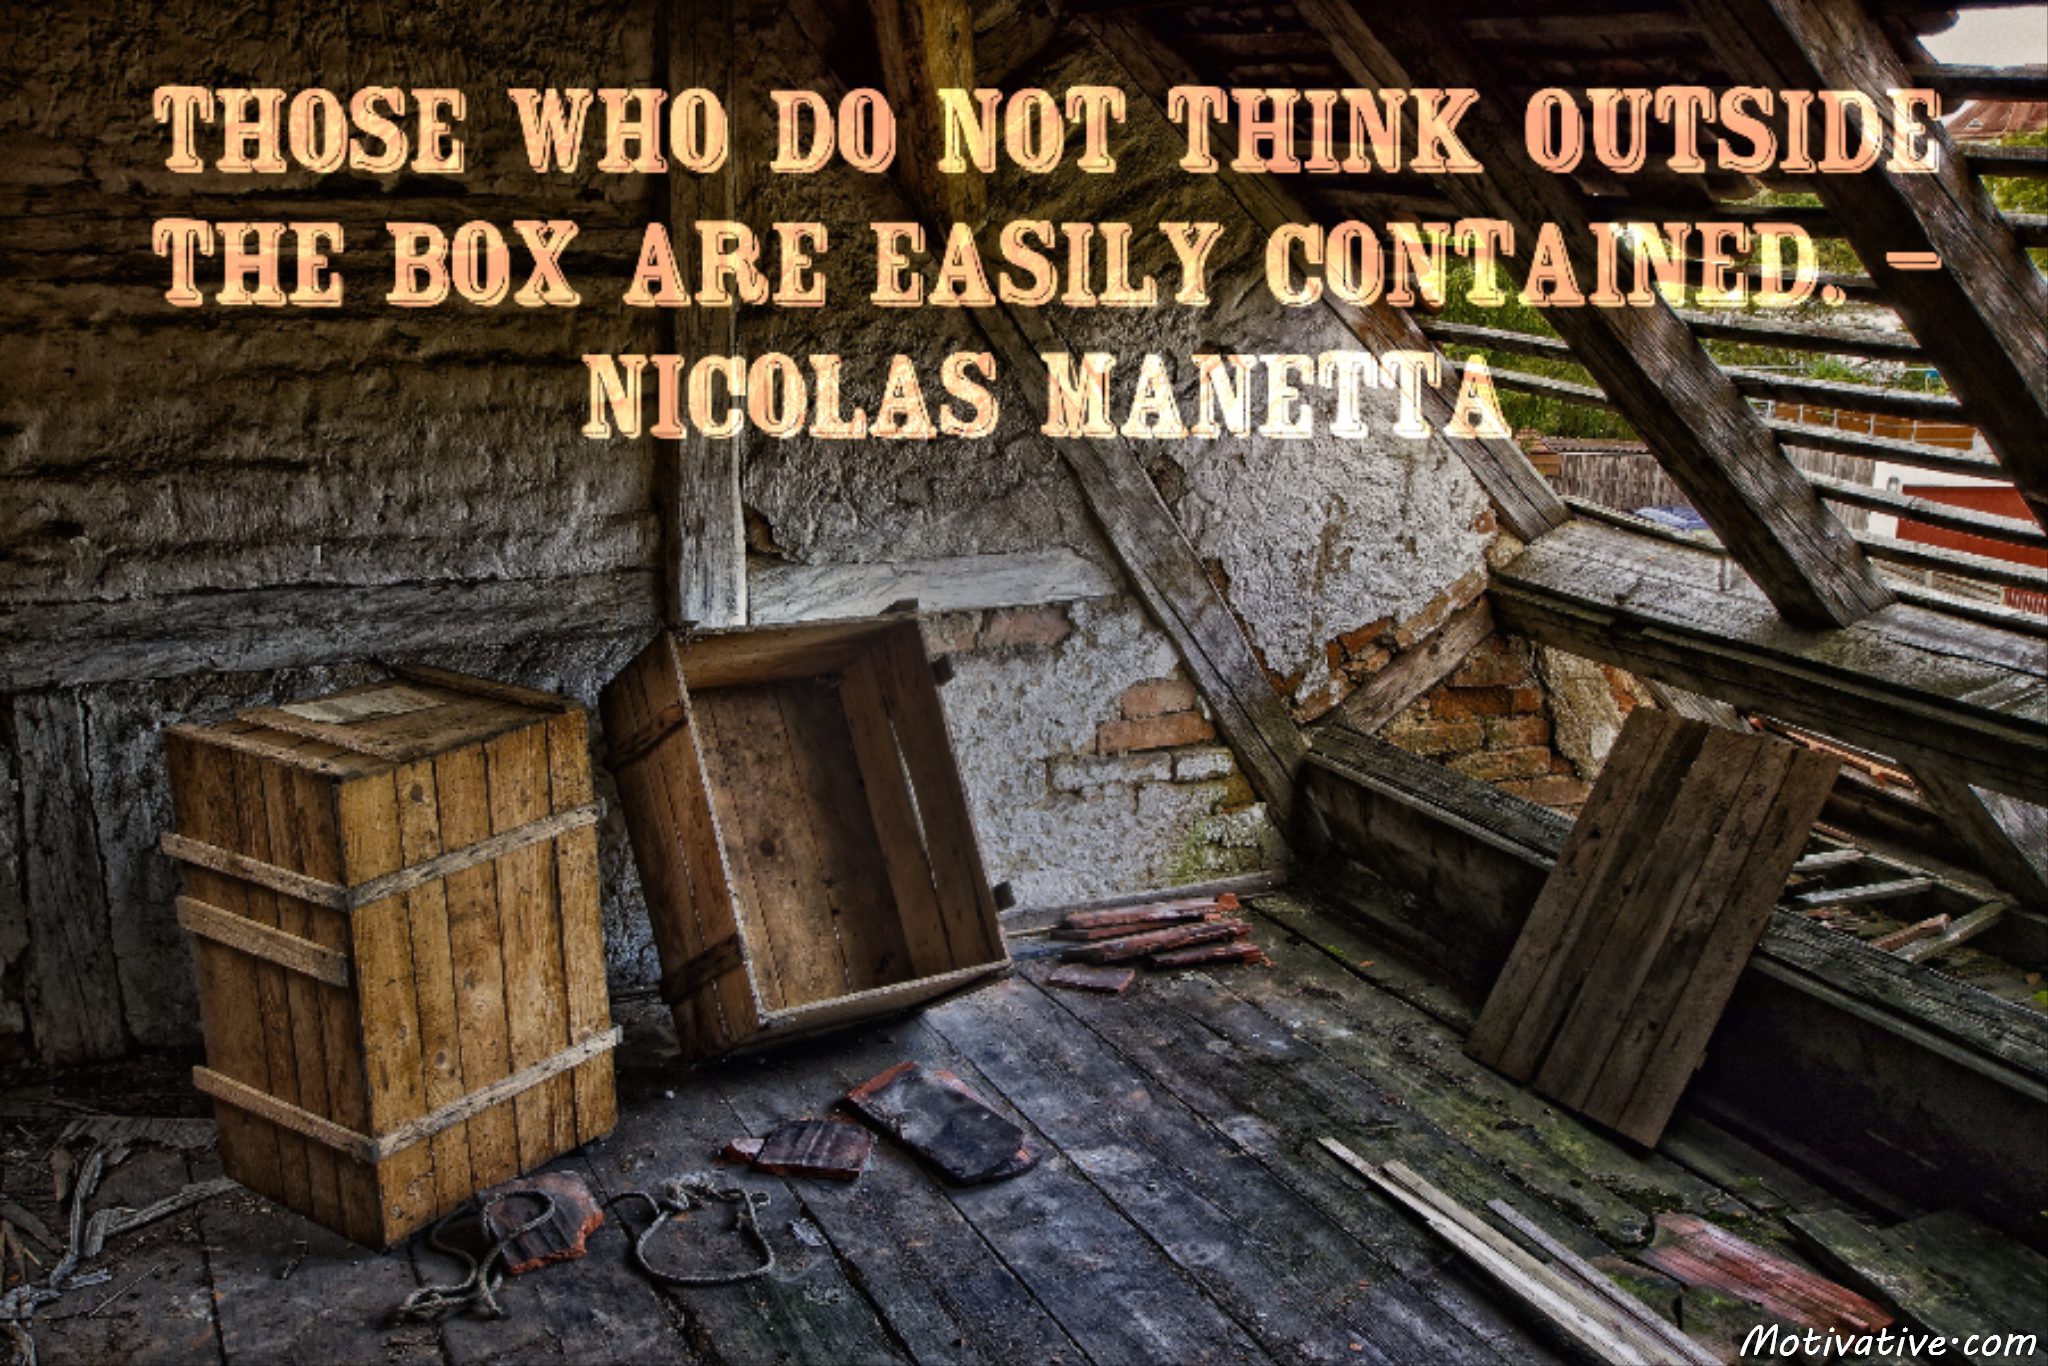 Those who do not think outside the box are easily contained. – Nicolas Manetta